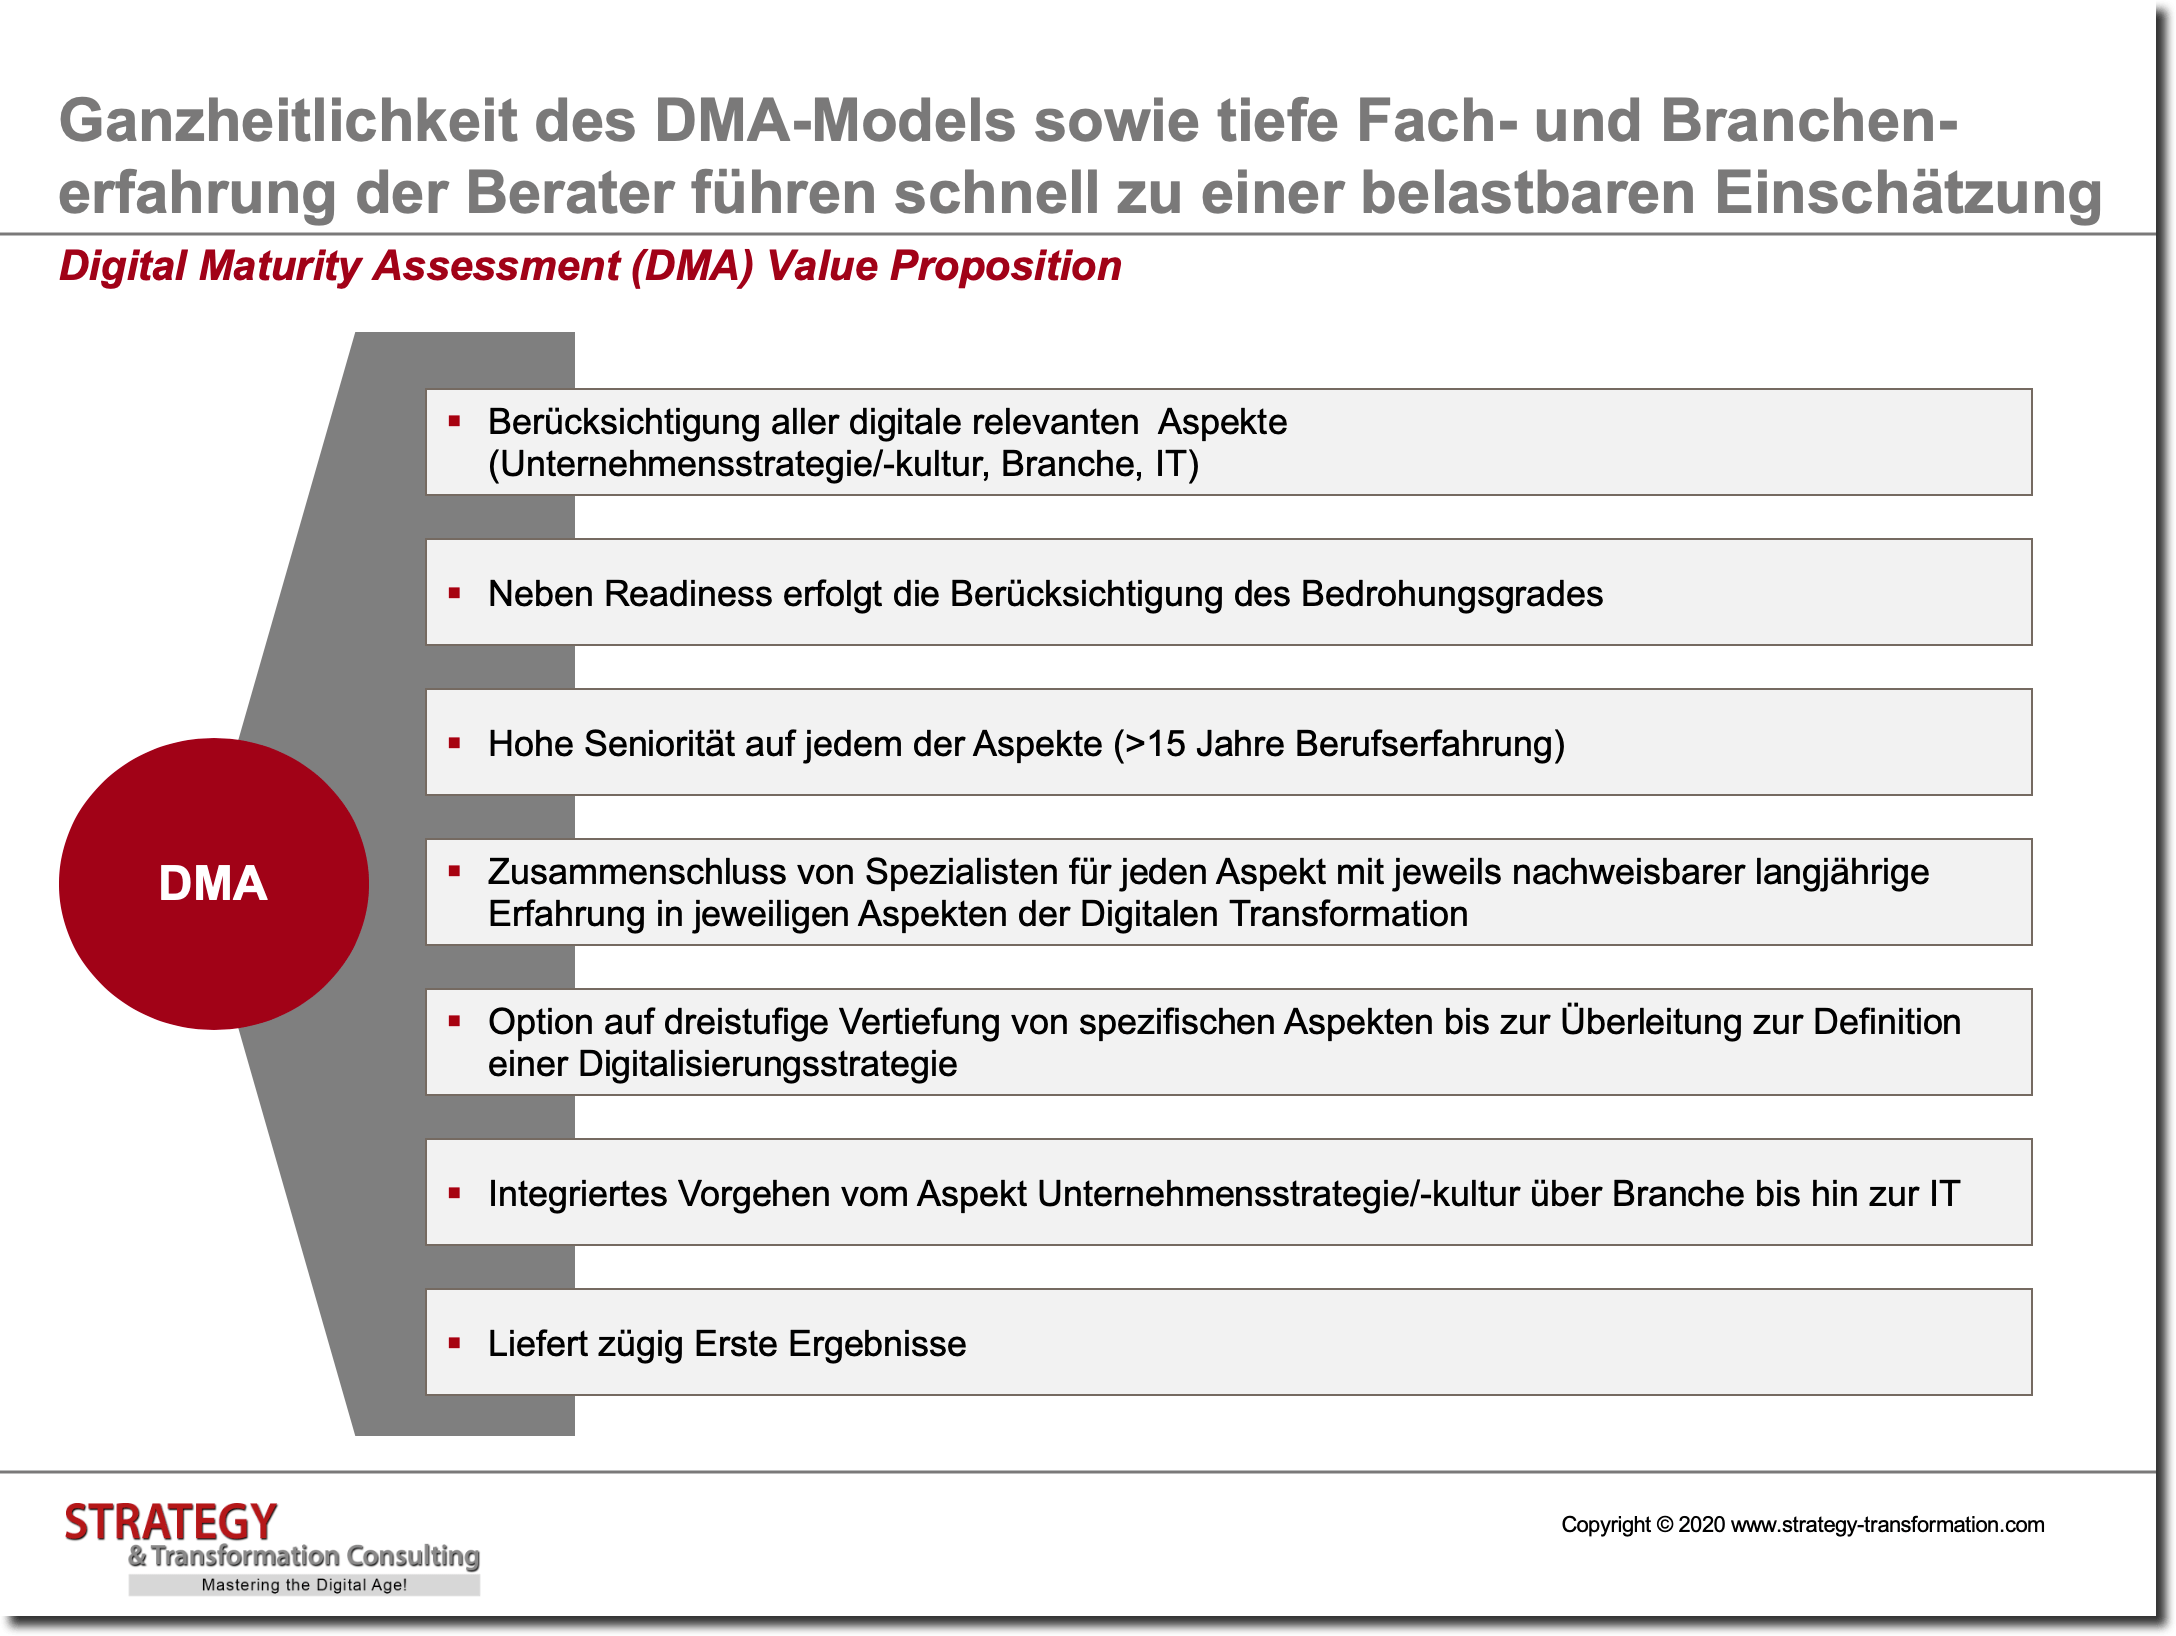 Digital Maturity Assessment (DMA) Value Proposition